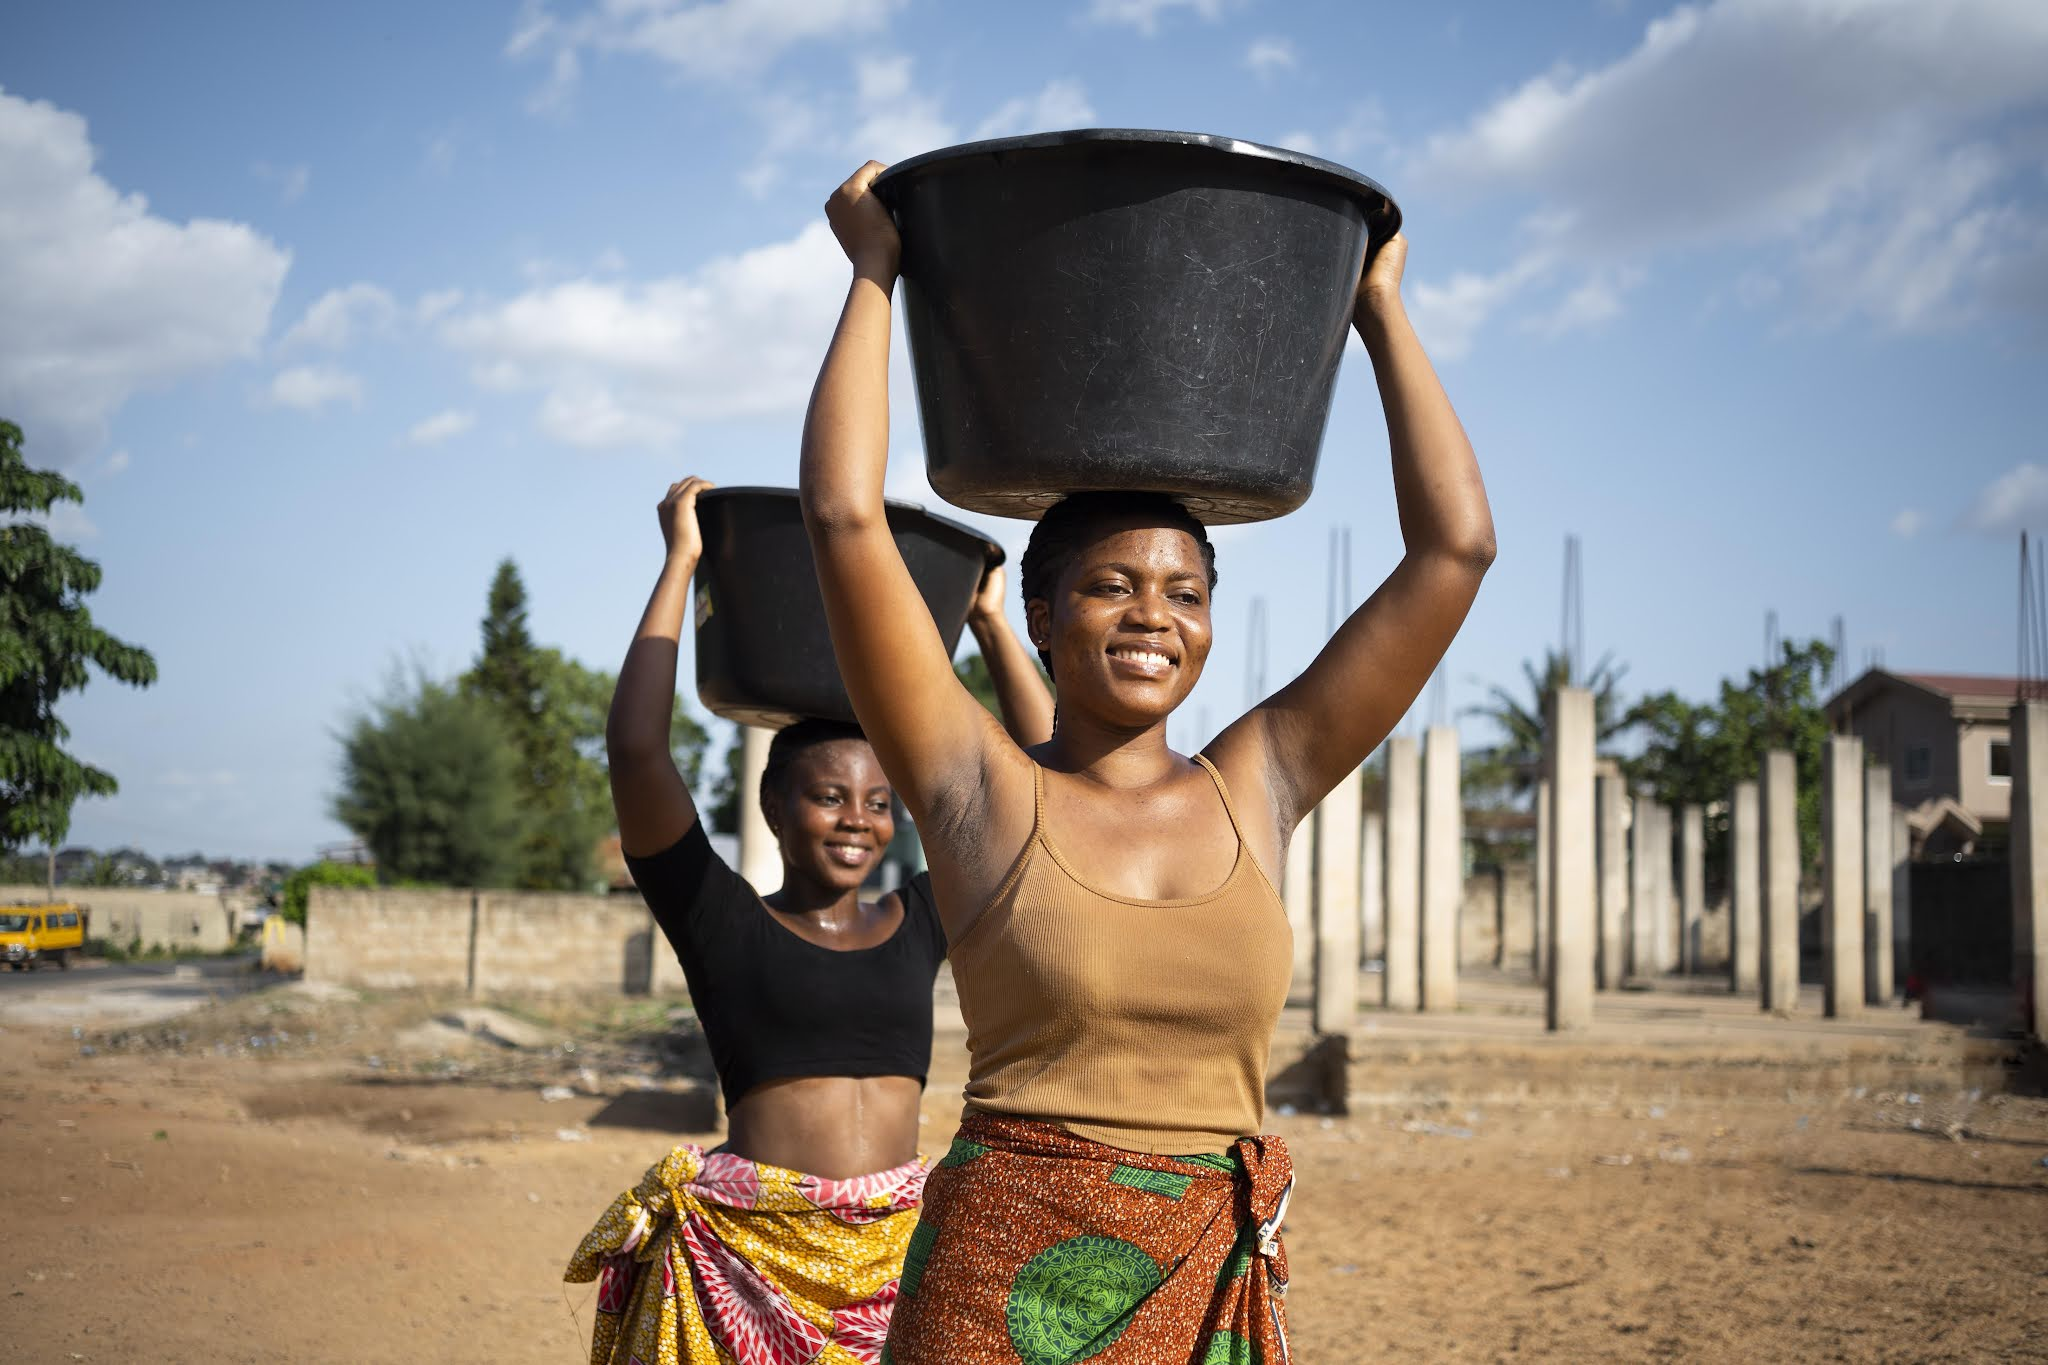 A Thigh For A Bucket - Assault and Harassment Reign Supreme At Boreholes and Waterpoints in Zimbabwe